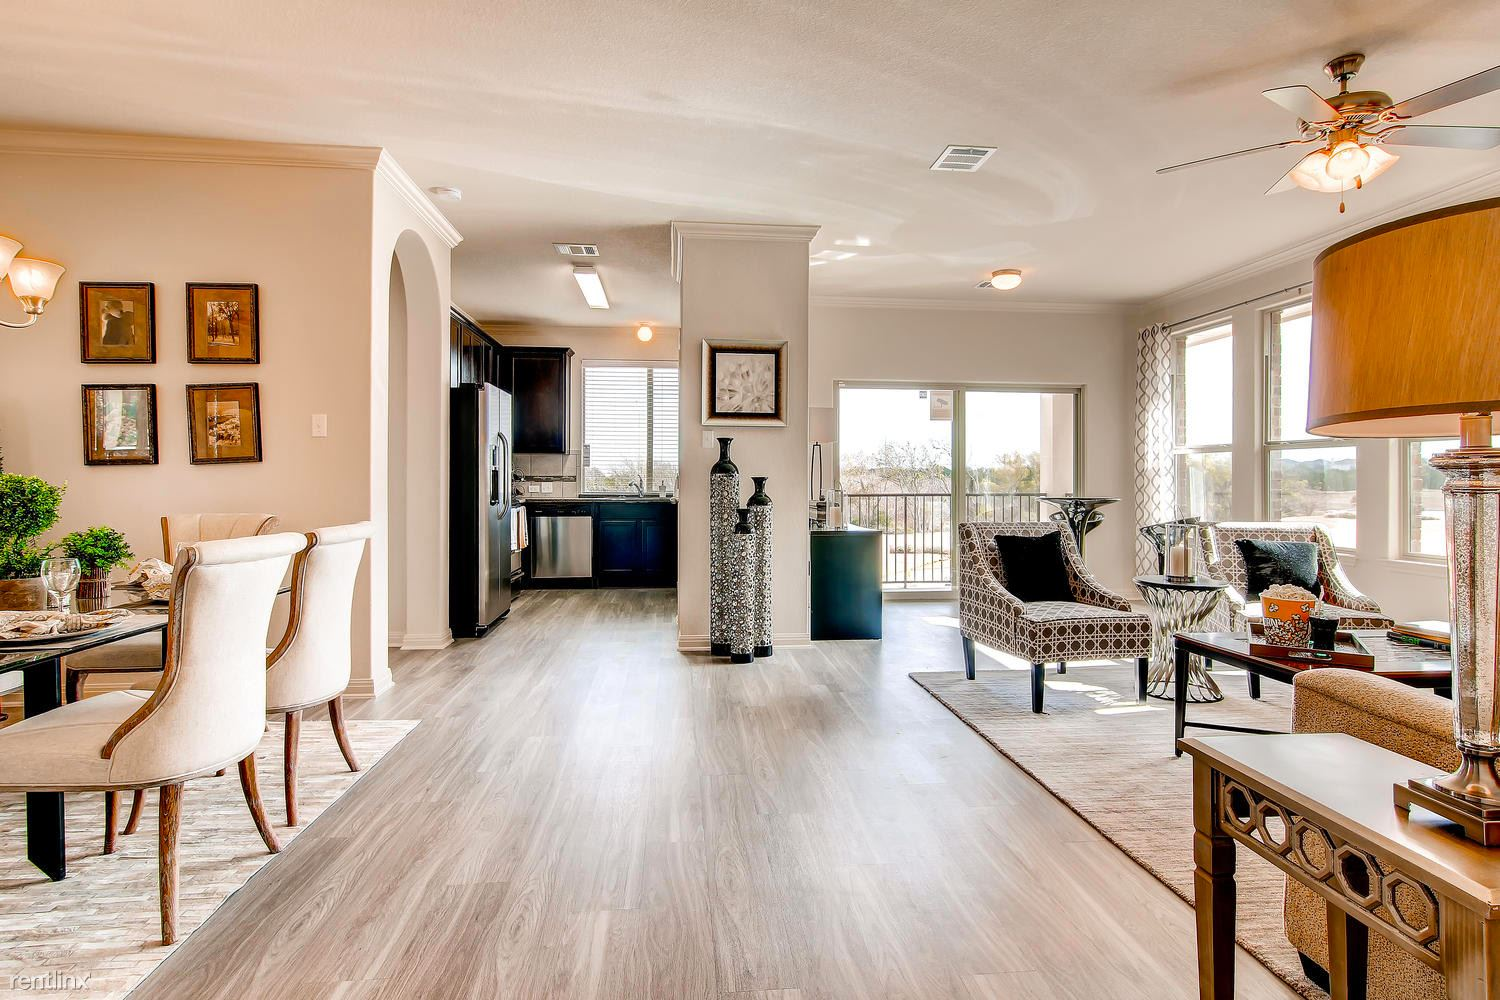 DoubleEagleTownhomes - Model - large-048-Double Eagle Townhomes 1 -1500x1000-72dpi